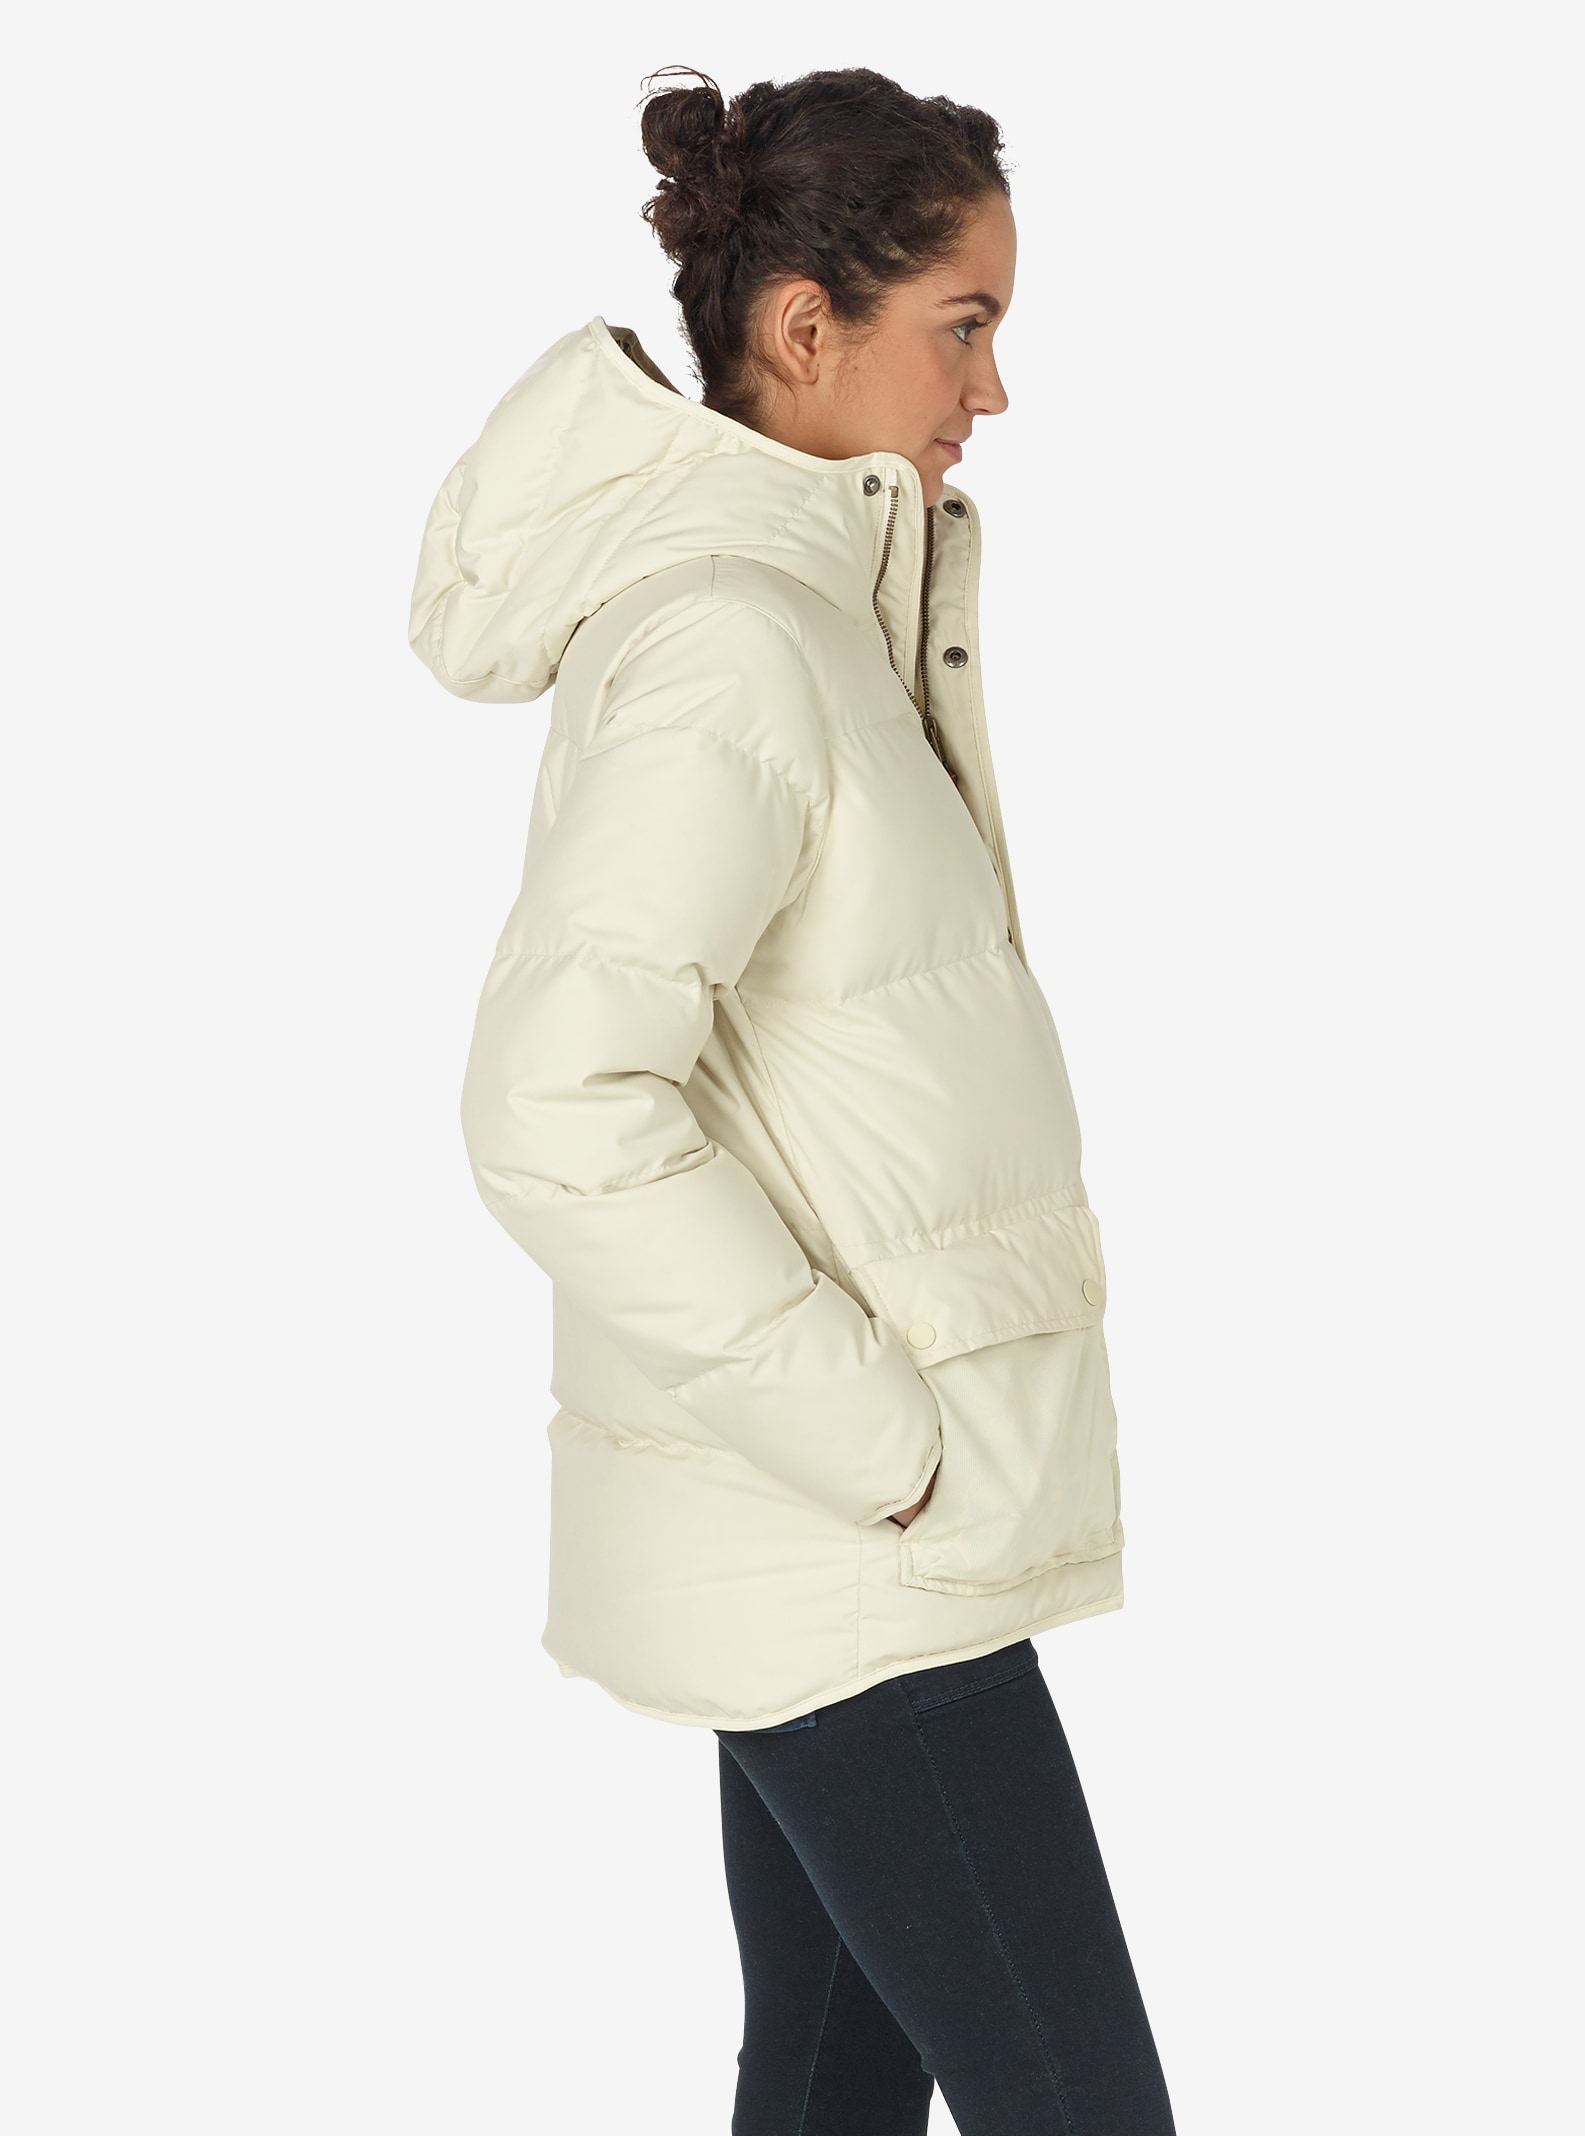 Women's Burton Mage Insulator Jacket shown in Canvas